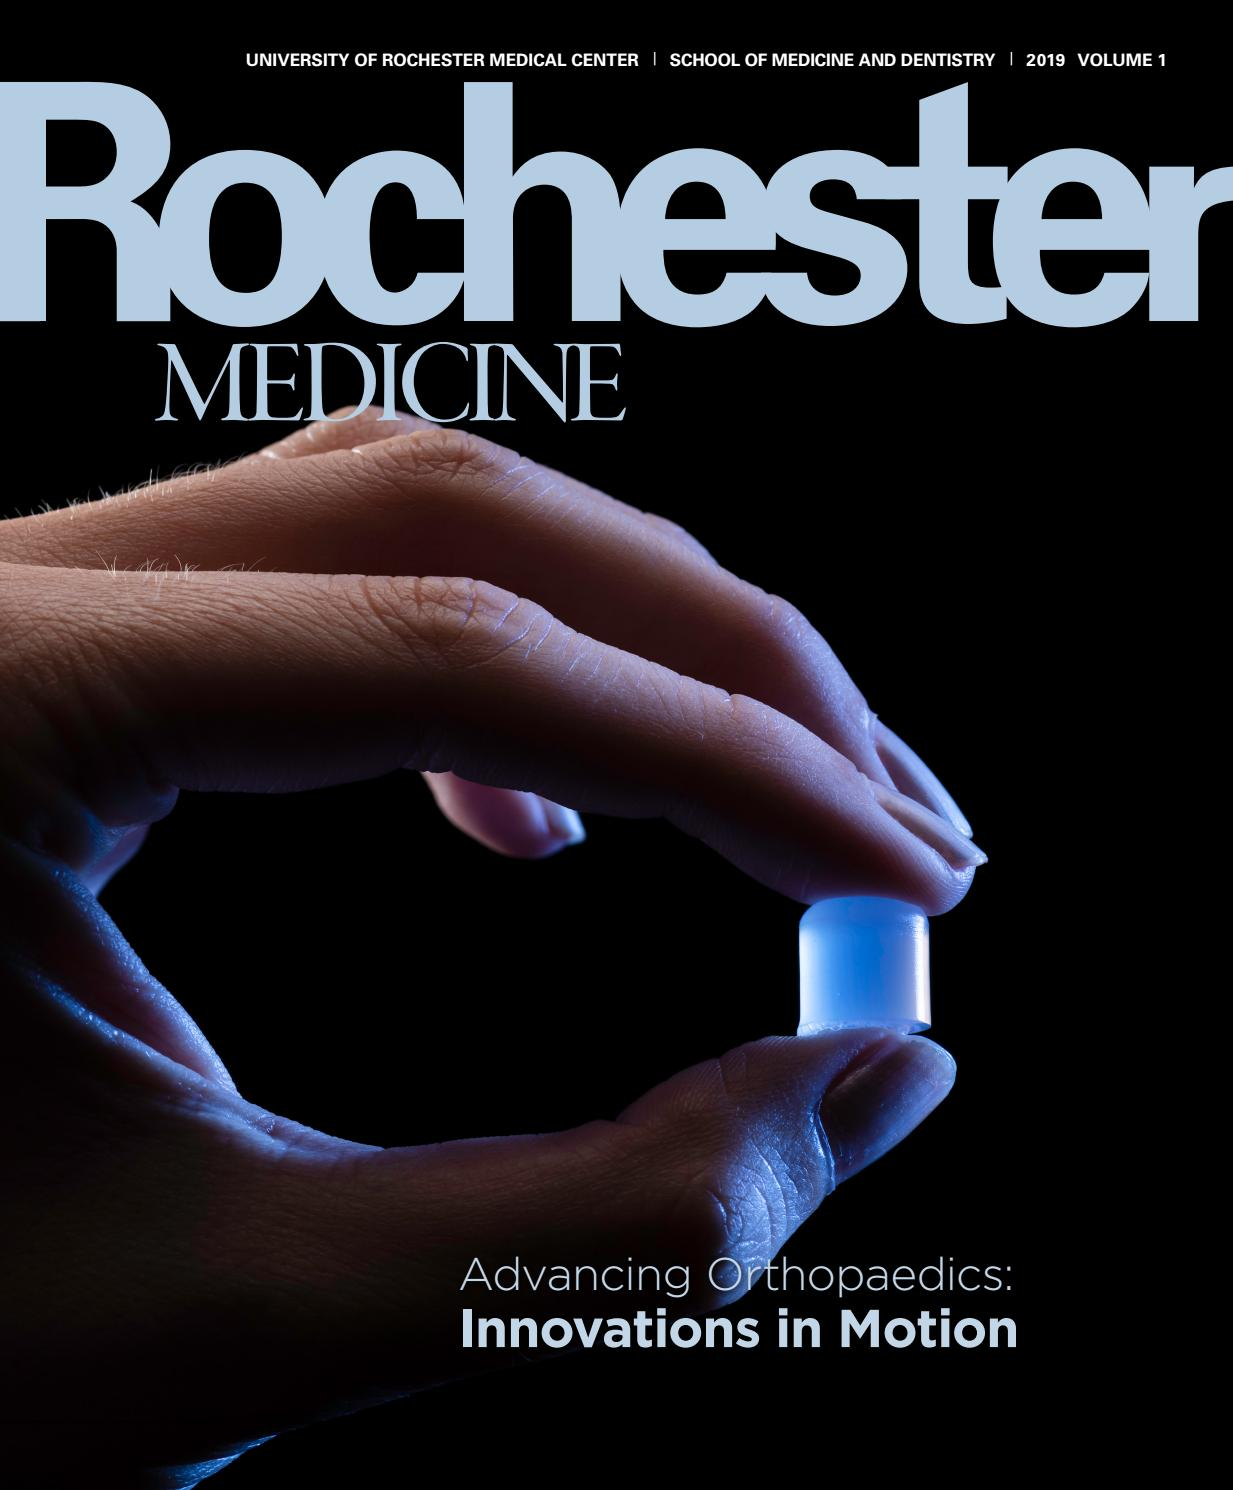 Rochester Medicine | Volume 1 2019 by University of